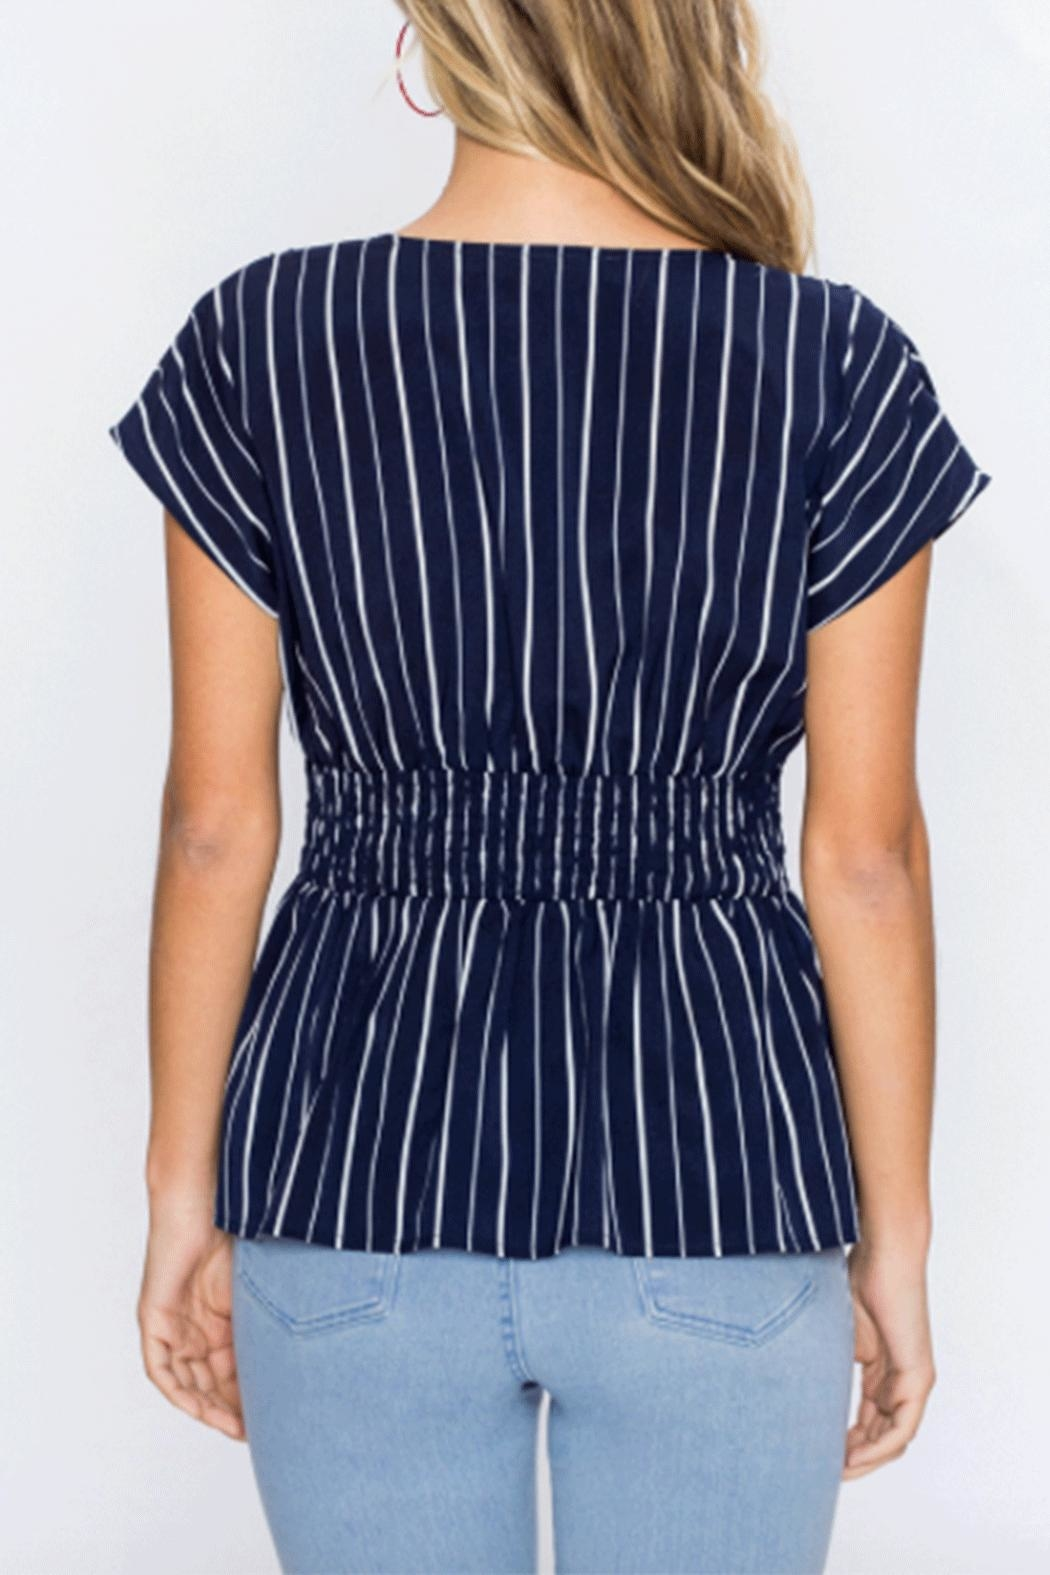 Flying Tomato Stripe Peplum Top - Front Full Image